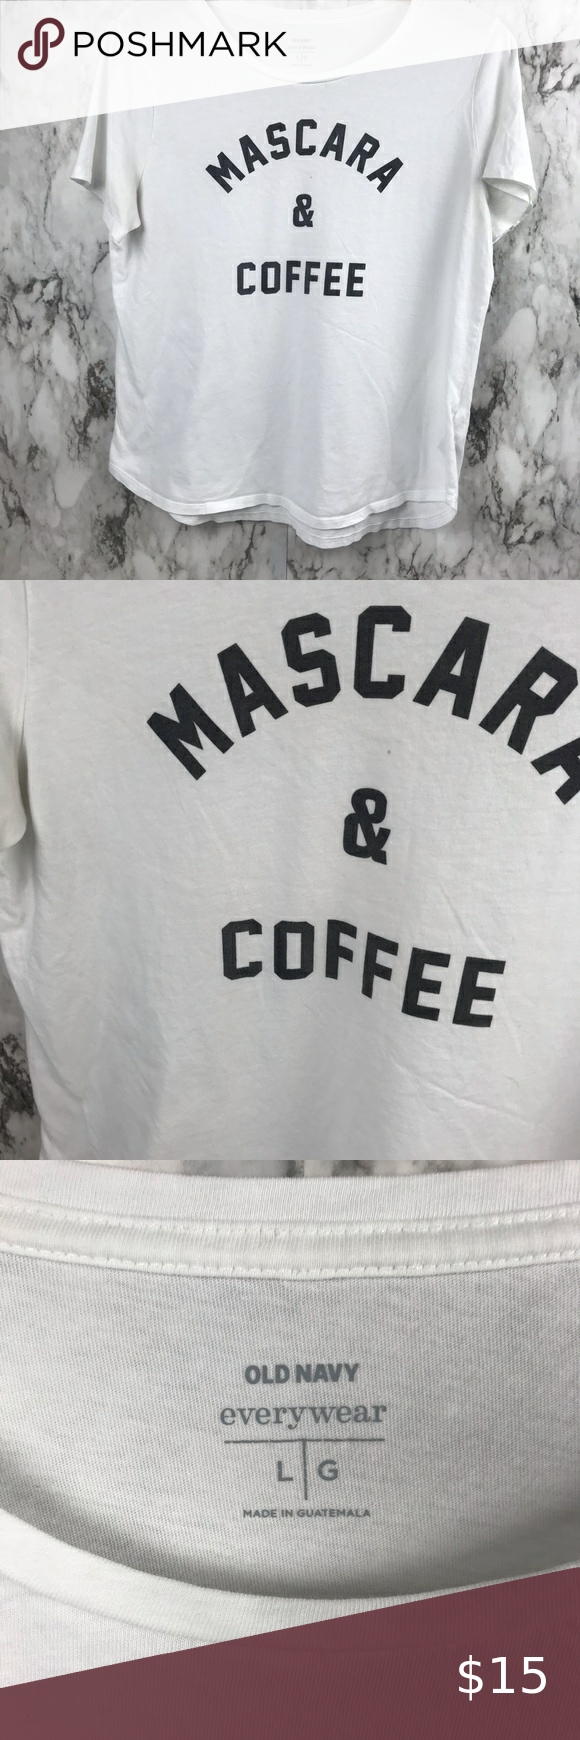 """Mascara and Coffee Blouse Shirt Tee White L Size Large  Pit to pit 20"""" Length is 25"""" #003 Old Navy Tops Tees - Short Sleeve"""